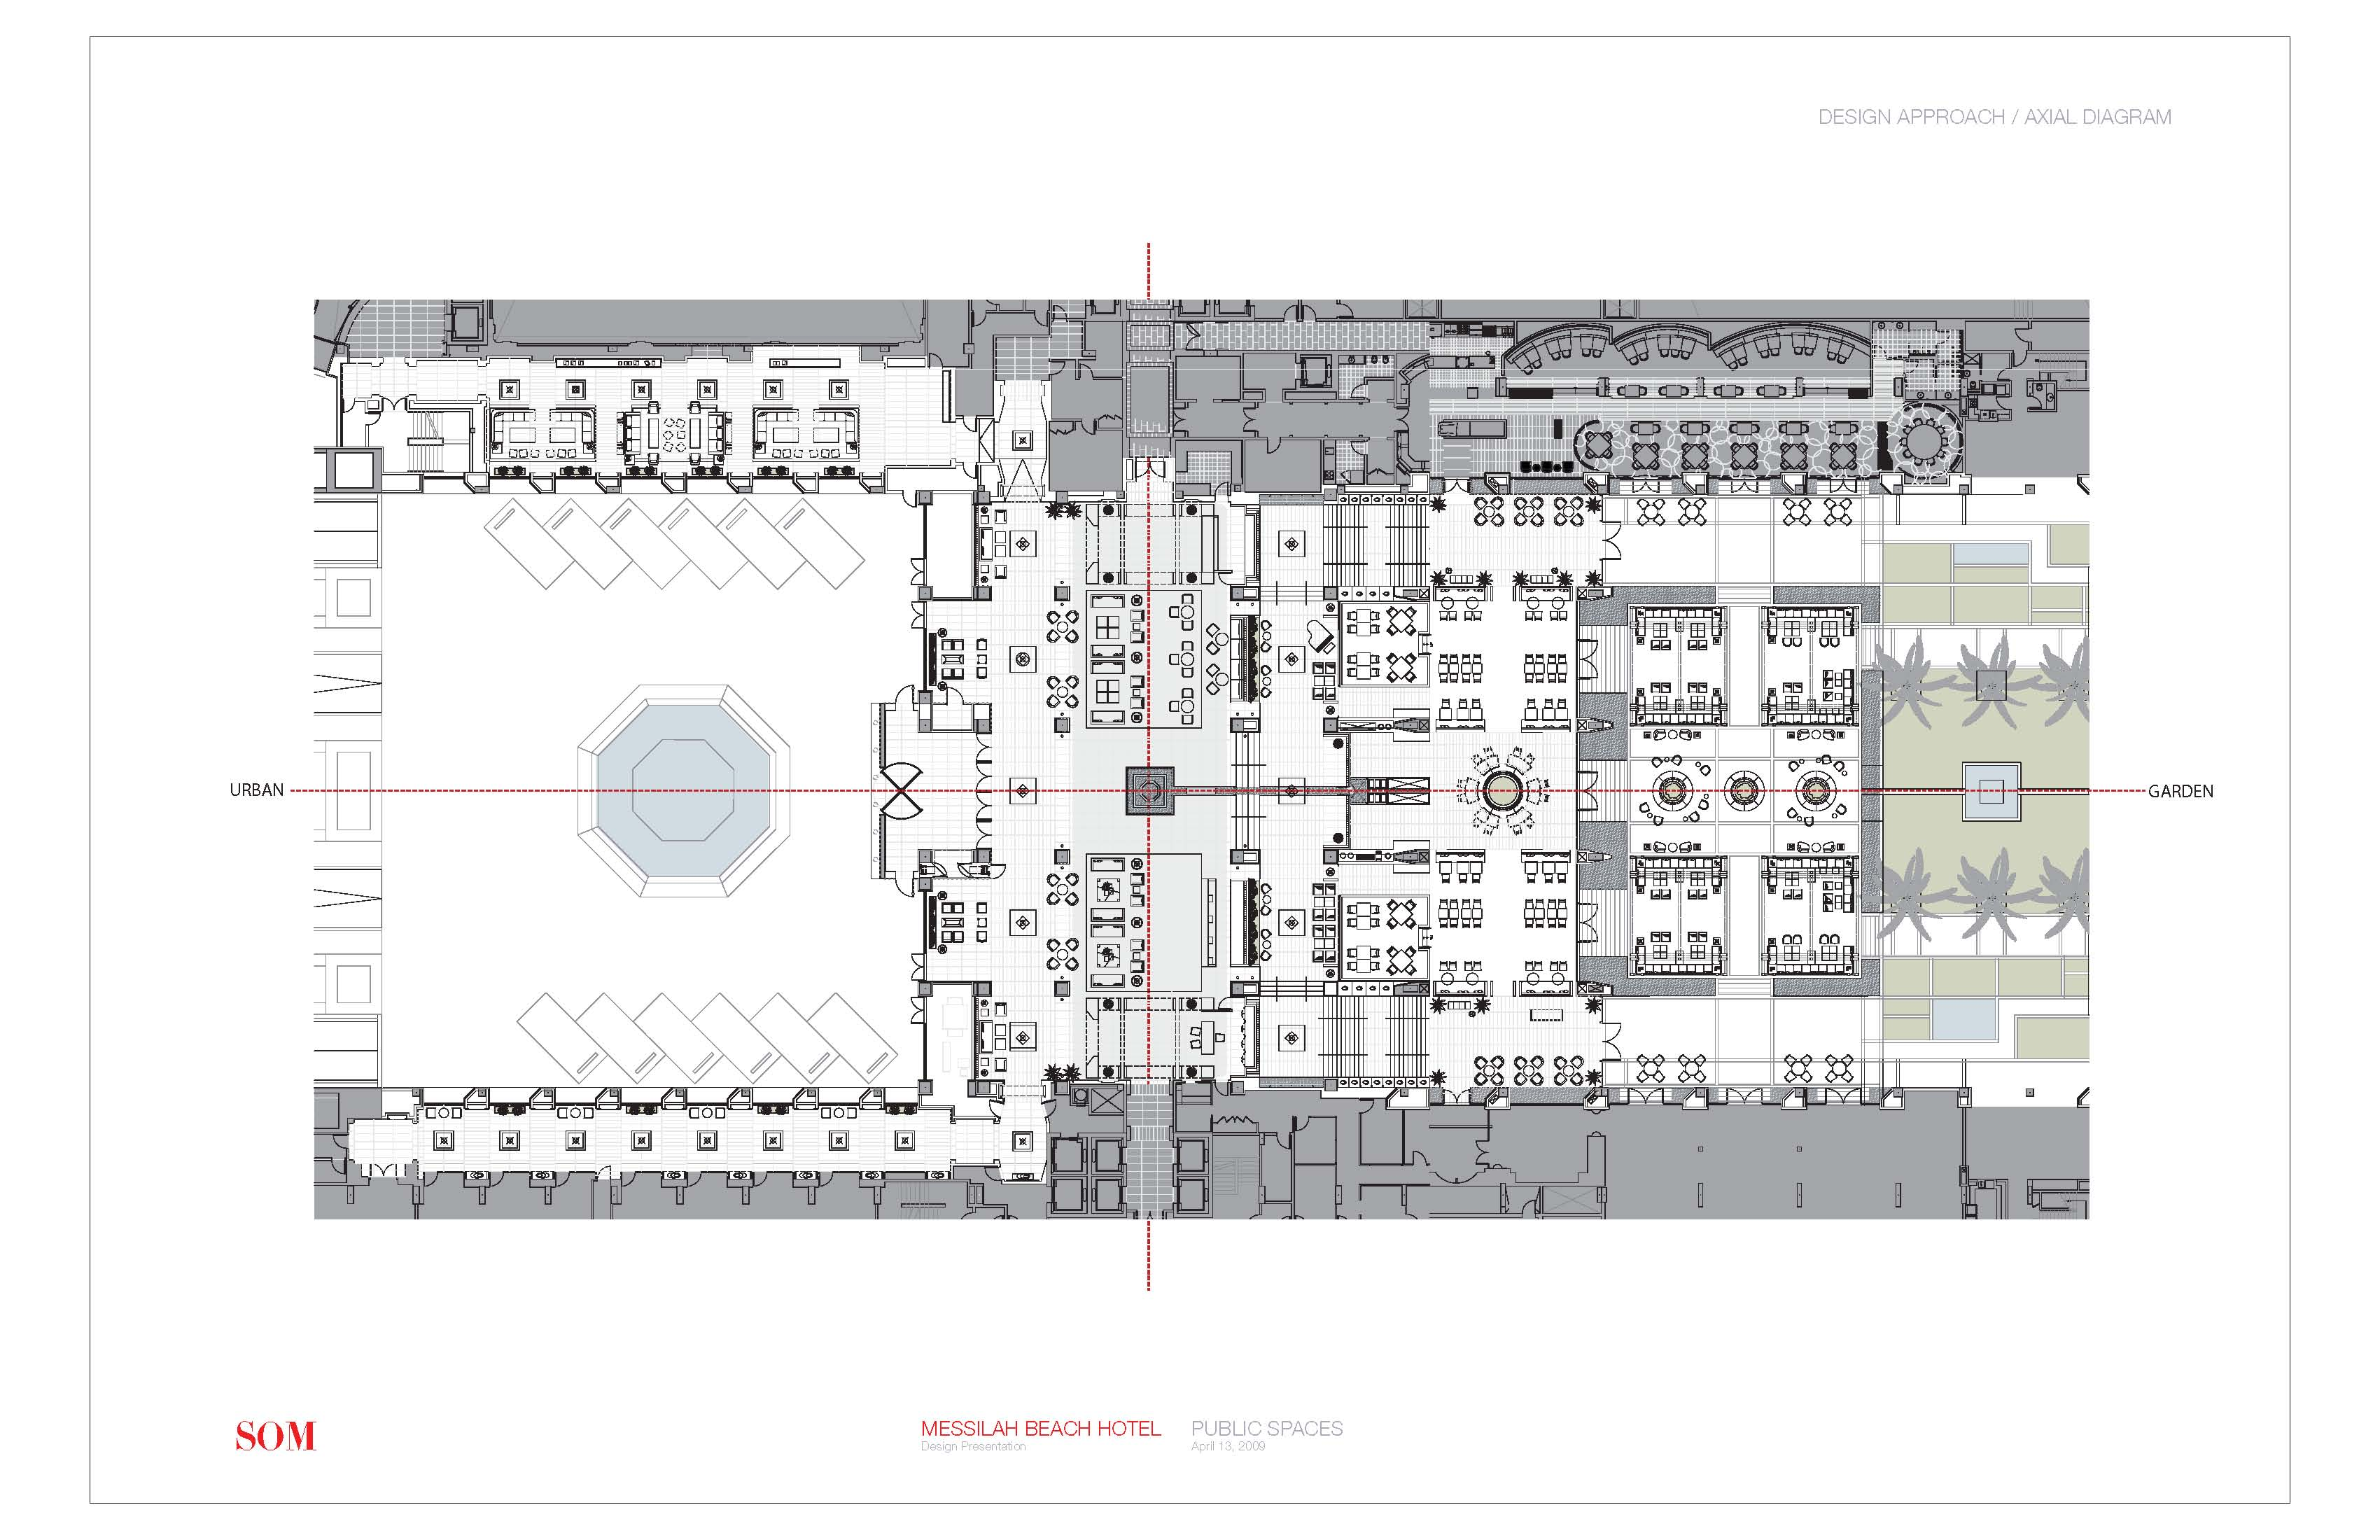 Mbh Ground Floor Plan Axial Diagram